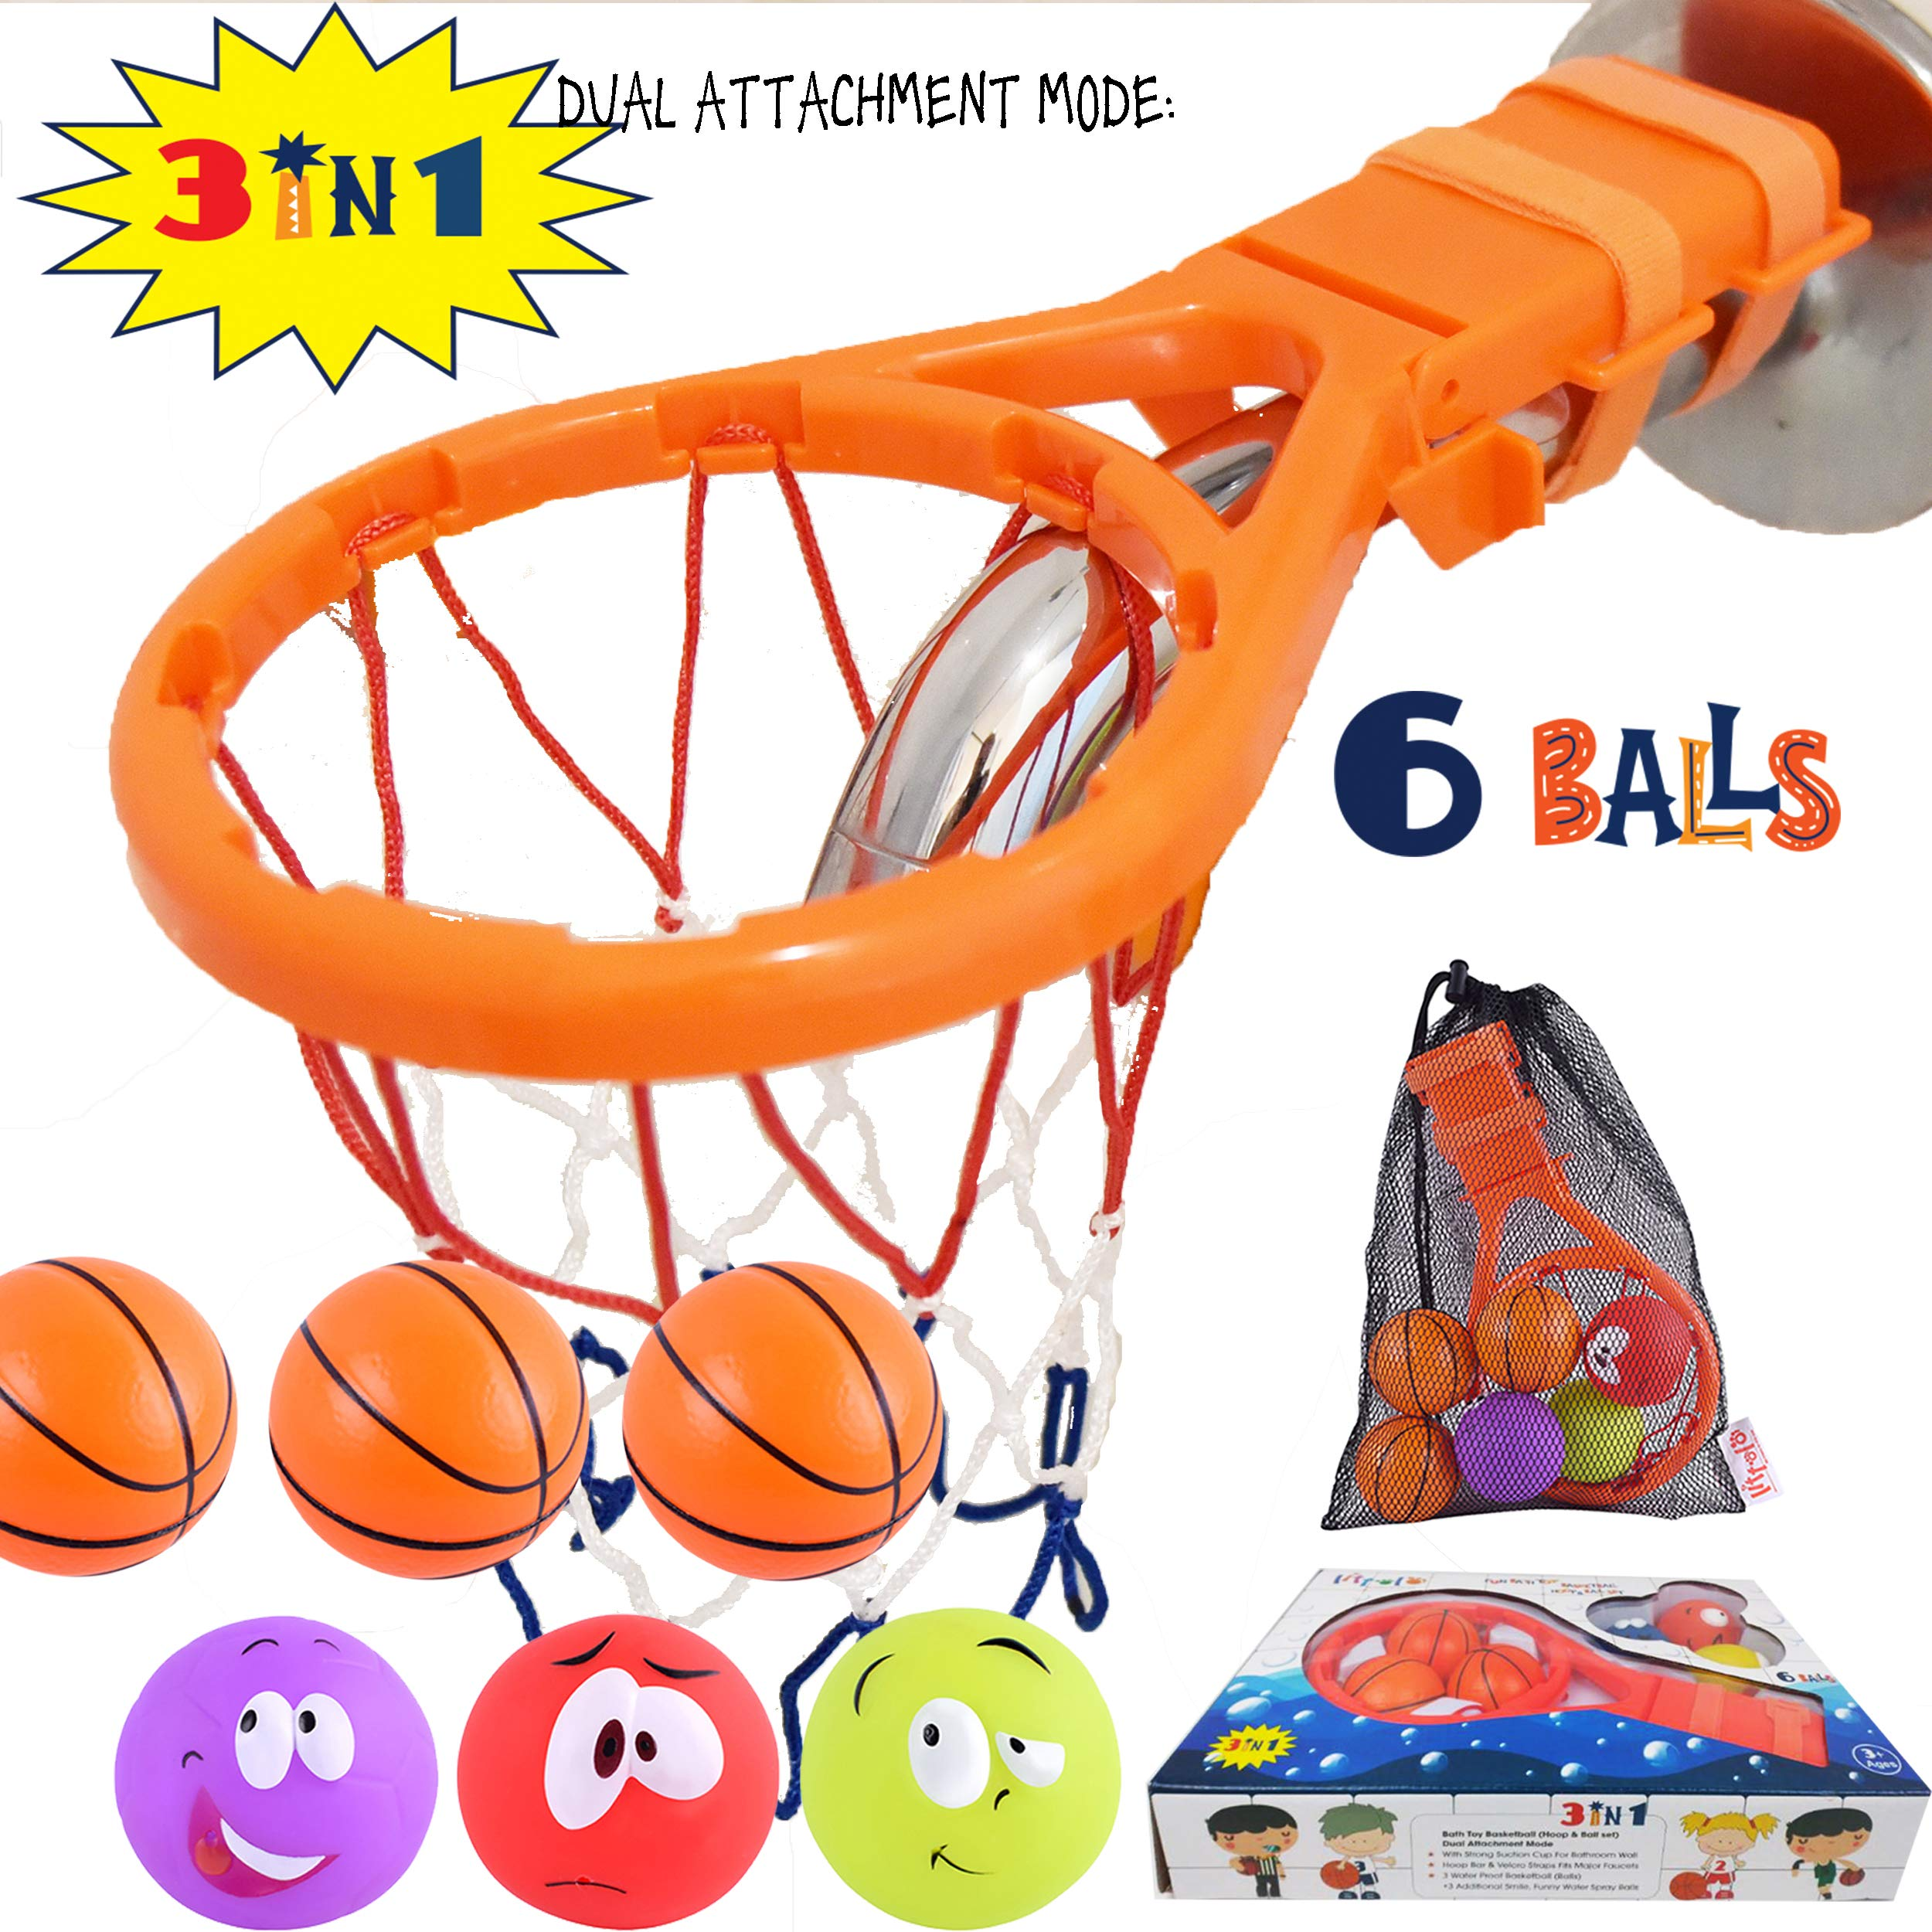 Littolo Bath Toy Basketball Hoop & Balls PlaySet(3 in 1 Design) with 6 Balls, Gift Box,Mesh Bag,Bathtub Toy Gadget for Boys Girls,Kids,Toddlers Gift,Strong Suction Cup,Magic Rope,Smiley Ball,Fun Time